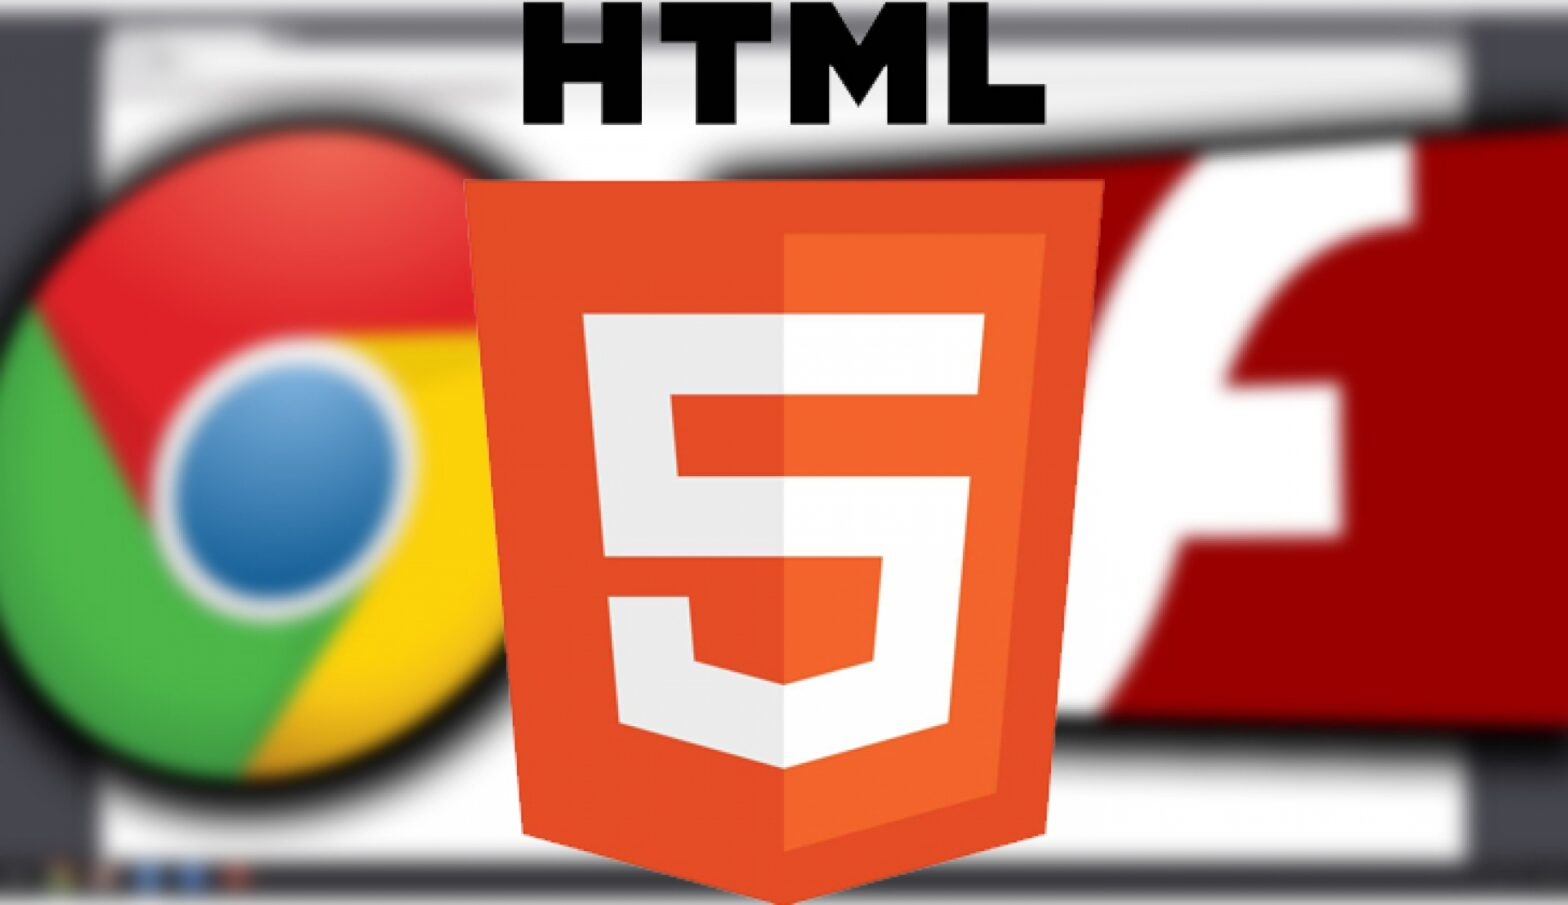 Chrome 55 Will Make HTML5 The Default Experience